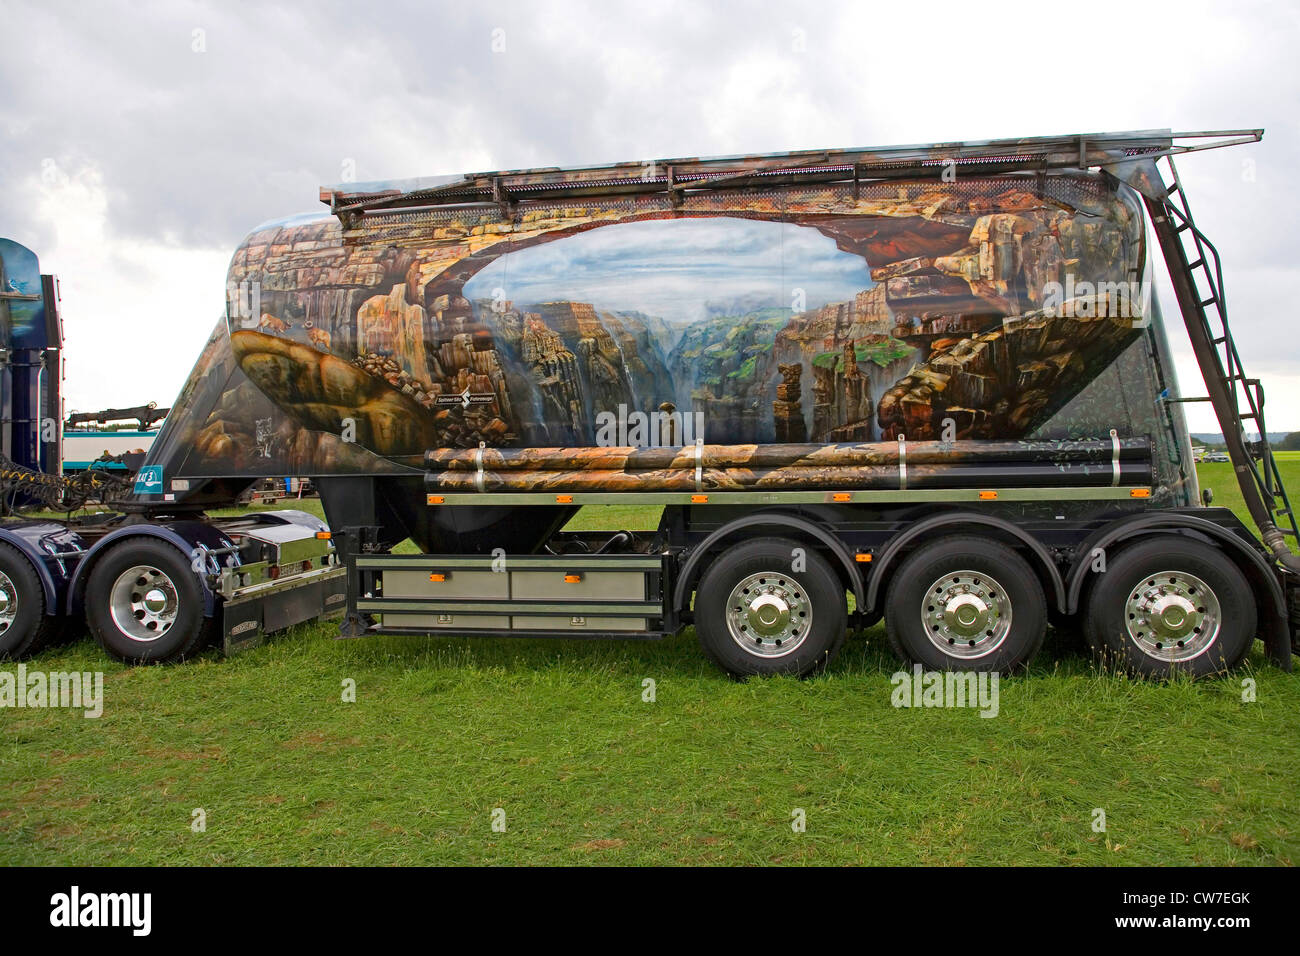 creatively painted truck at the trucker meeting Wolfsmeile, Germany, Schleswig-Holstein, Itzehoe - Stock Image